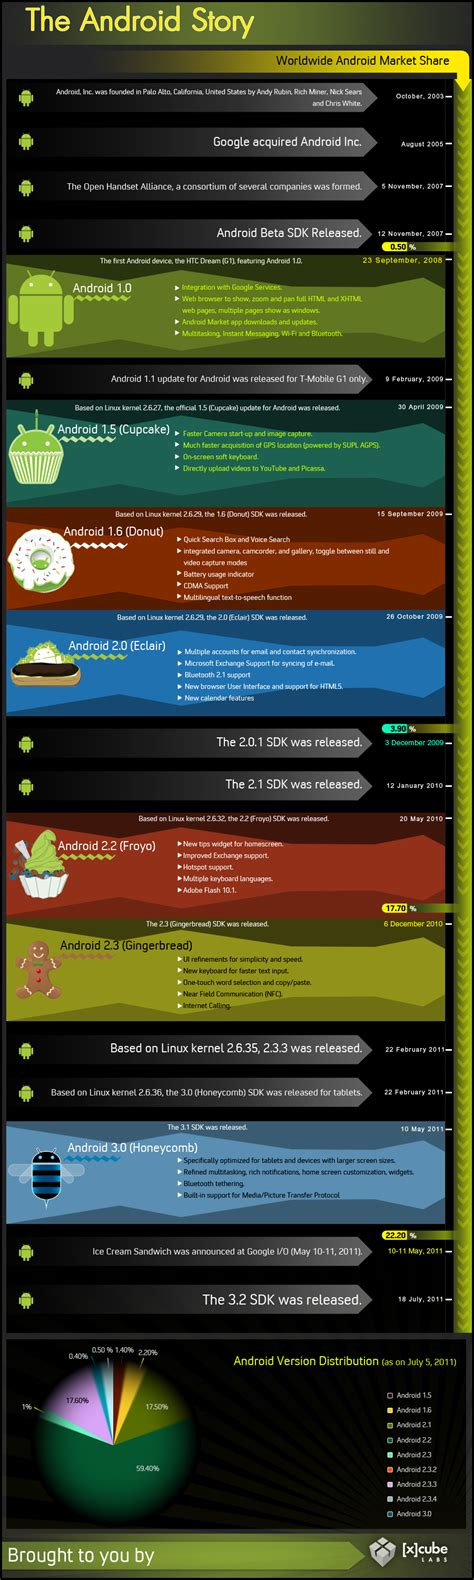 history of android the complete history of android in infograph form the android story